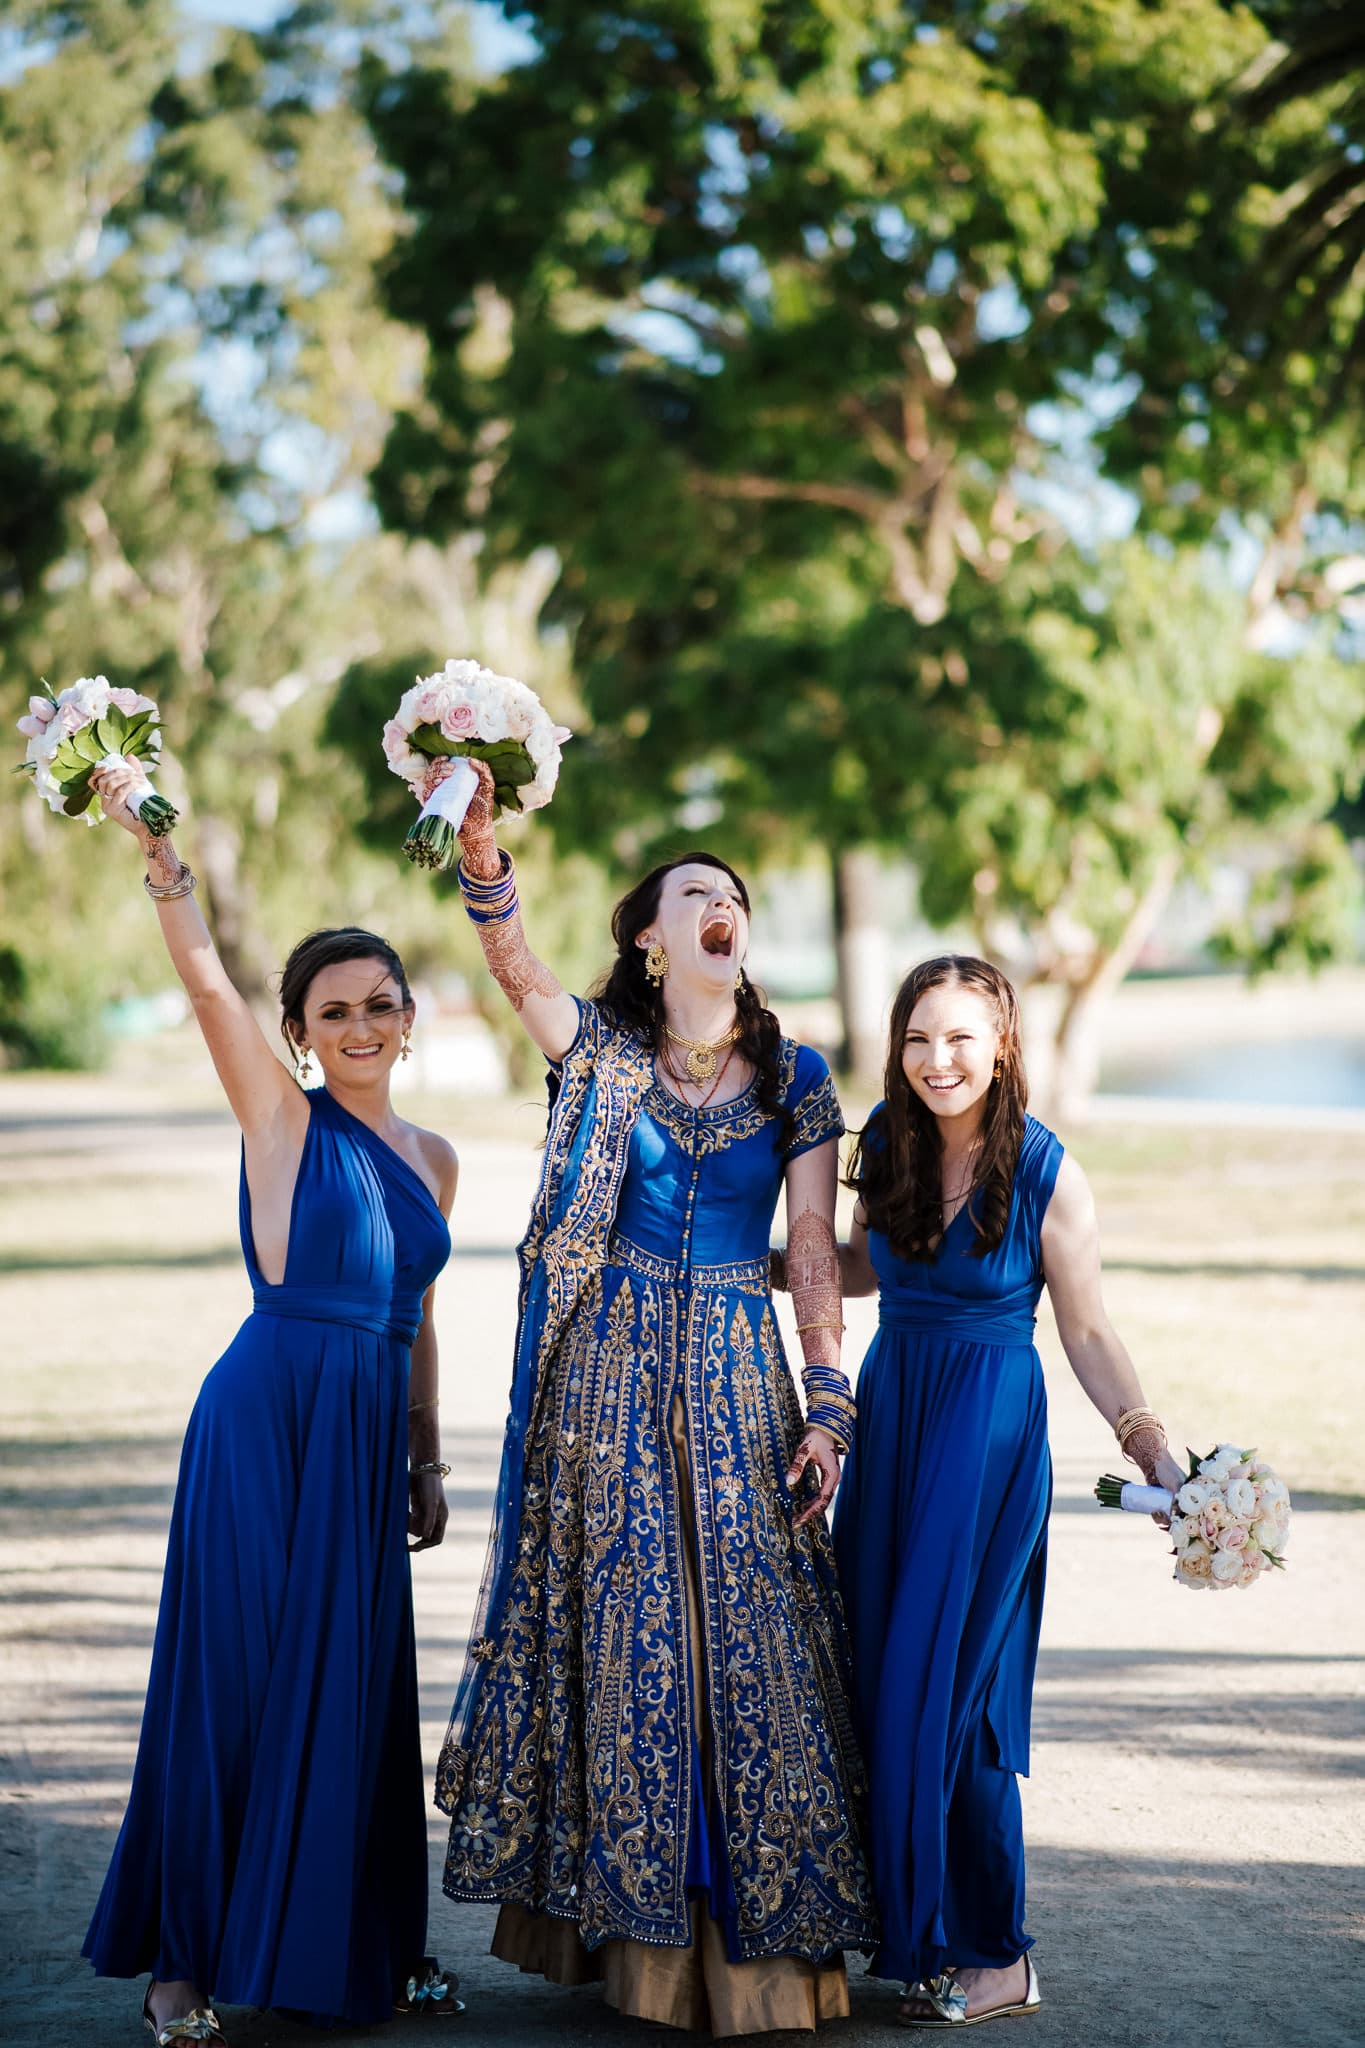 Melbourne bride, Claire with her bridesmaids at her colourful multicultural wedding.